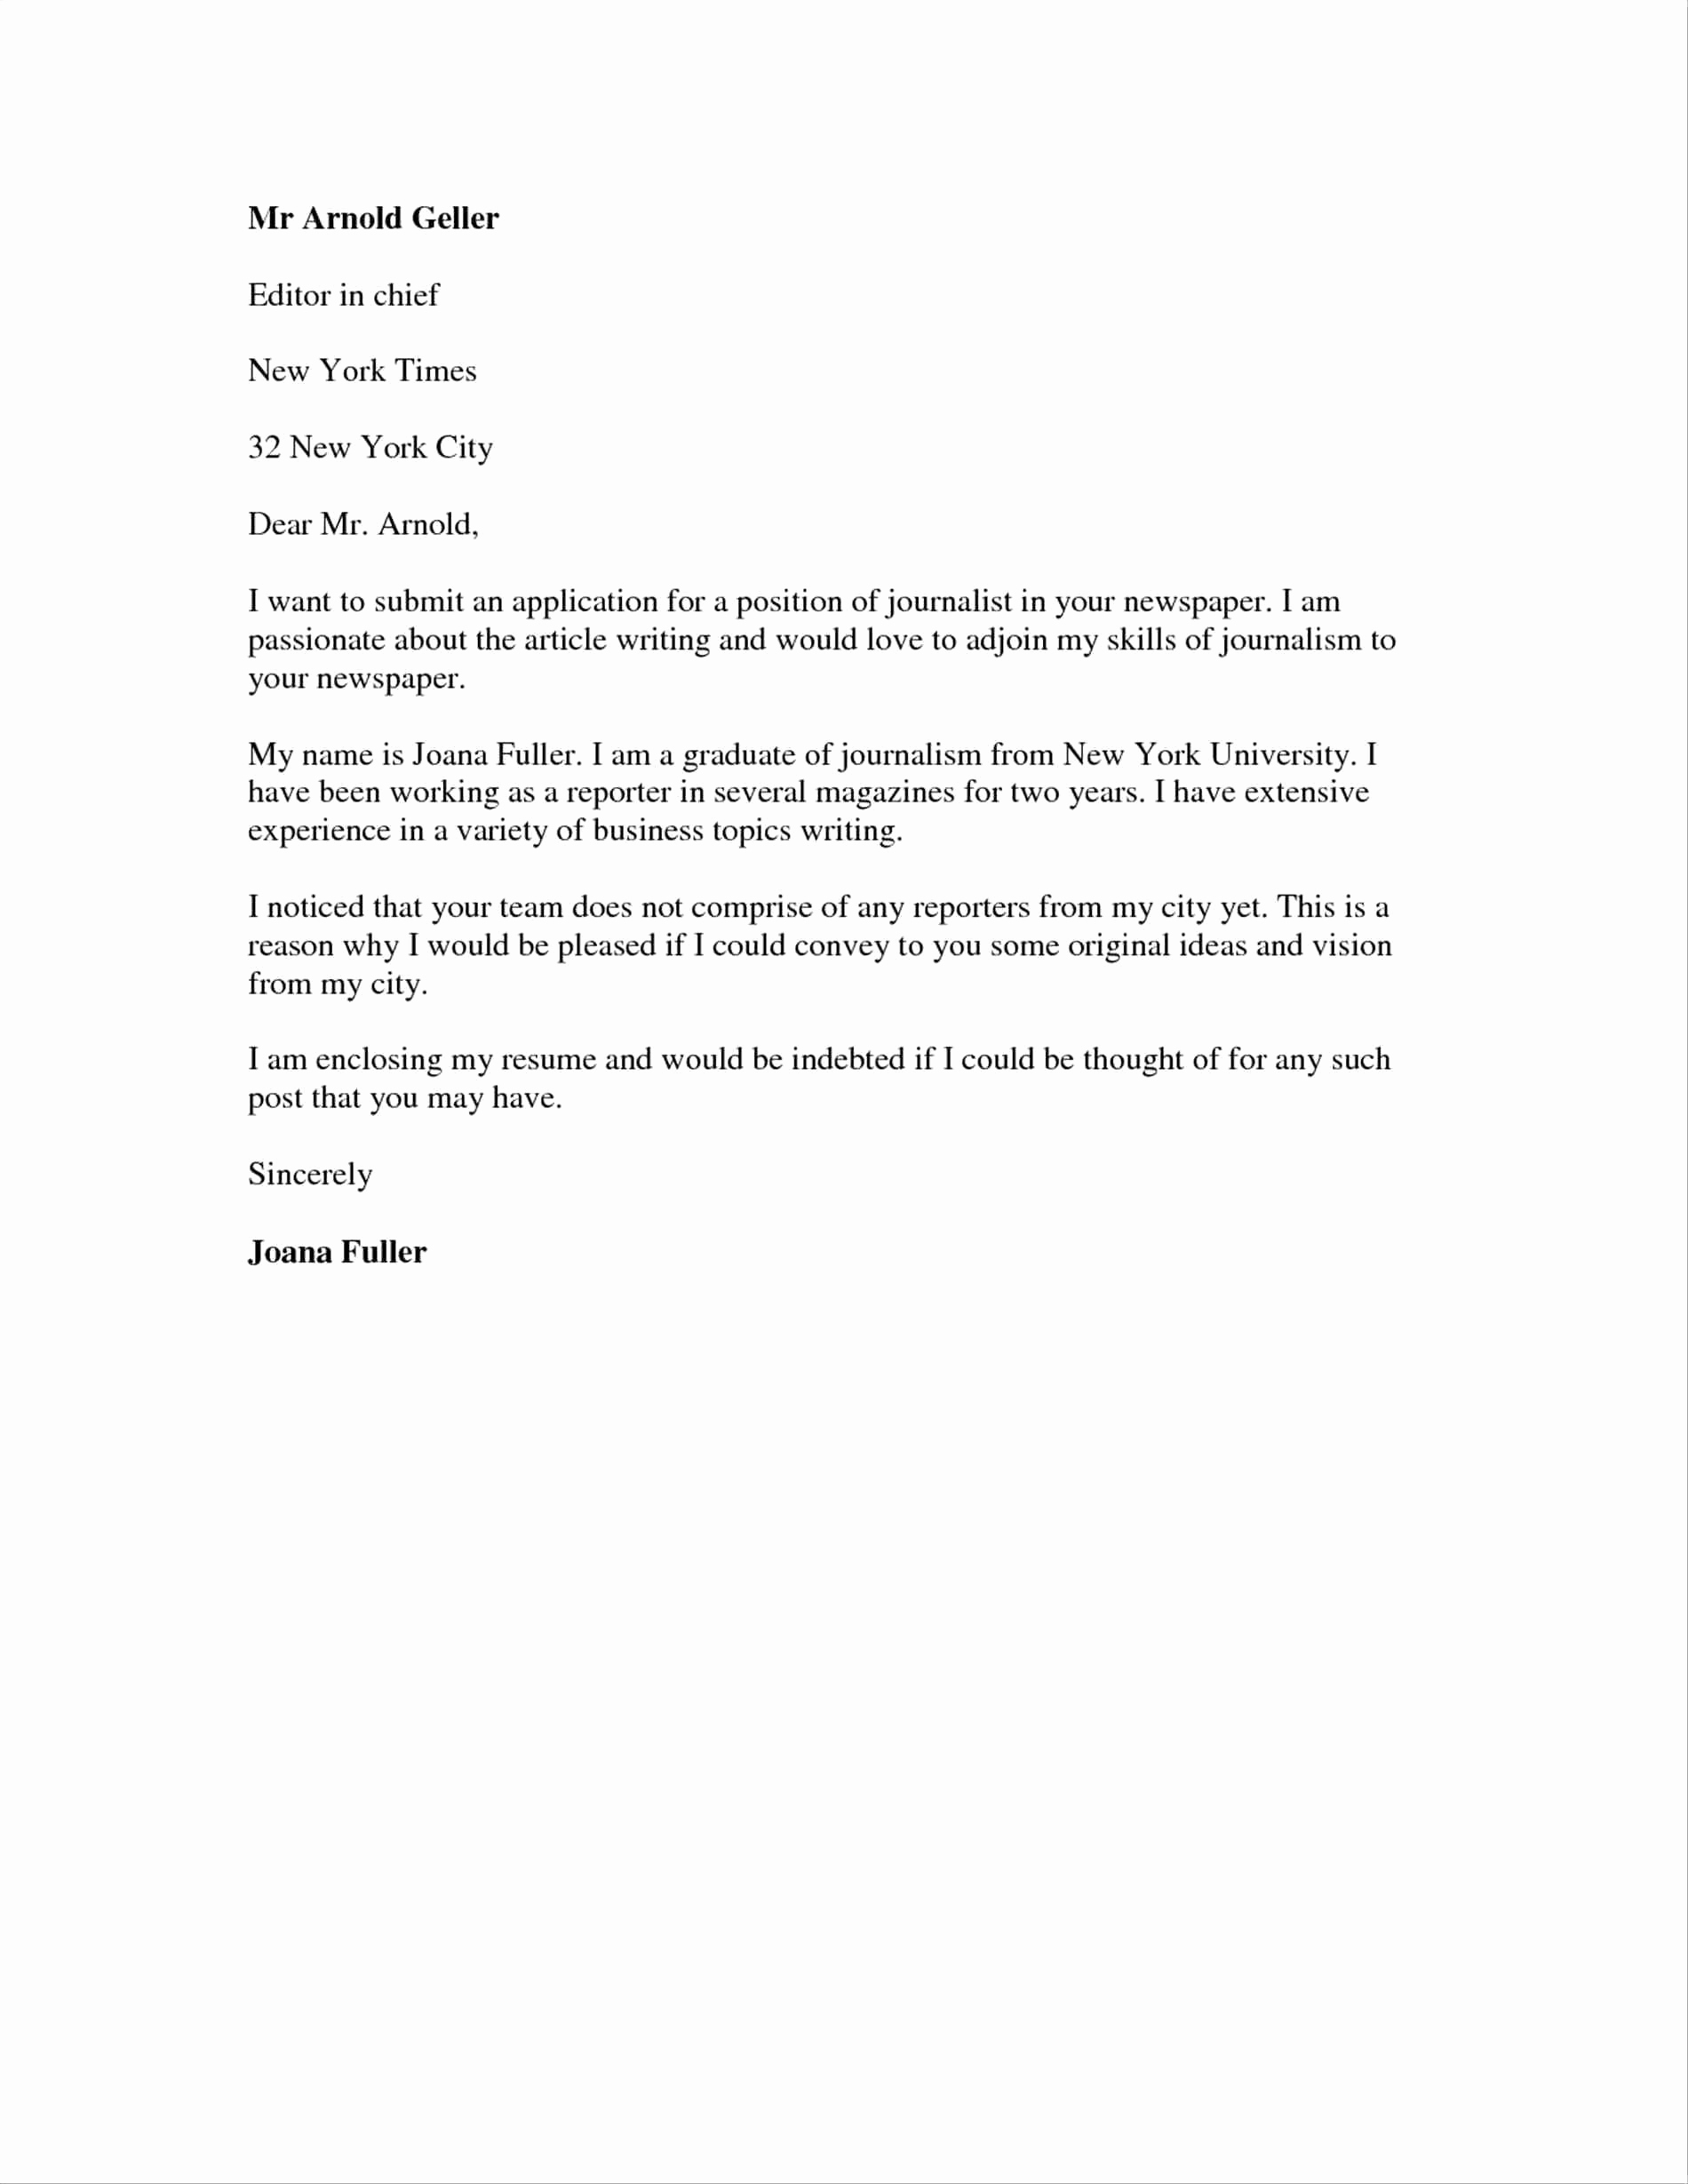 609 Dispute Letter Template - Job Letter Template Awesome Credit Report Dispute Letter Template